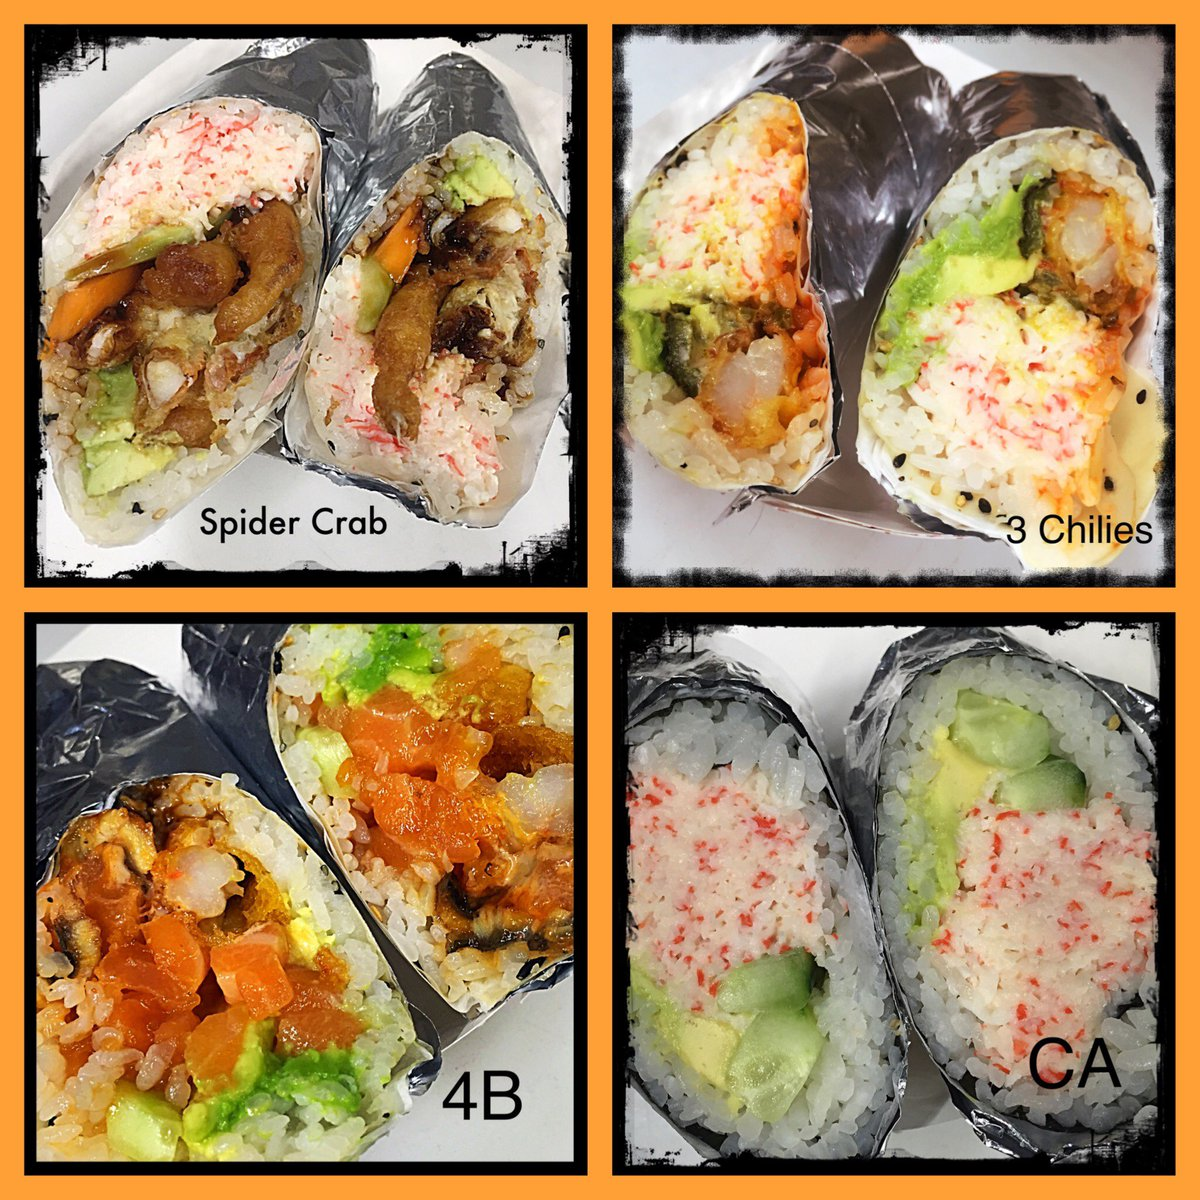 Tonite #LetsEatSushiburrito on BROADWAY btw 3rd and 4th!! #NightOnBroadway #DTLA #GrandCentralMarket 5-11p #FREEadm https://t.co/qNwDYfPOYm